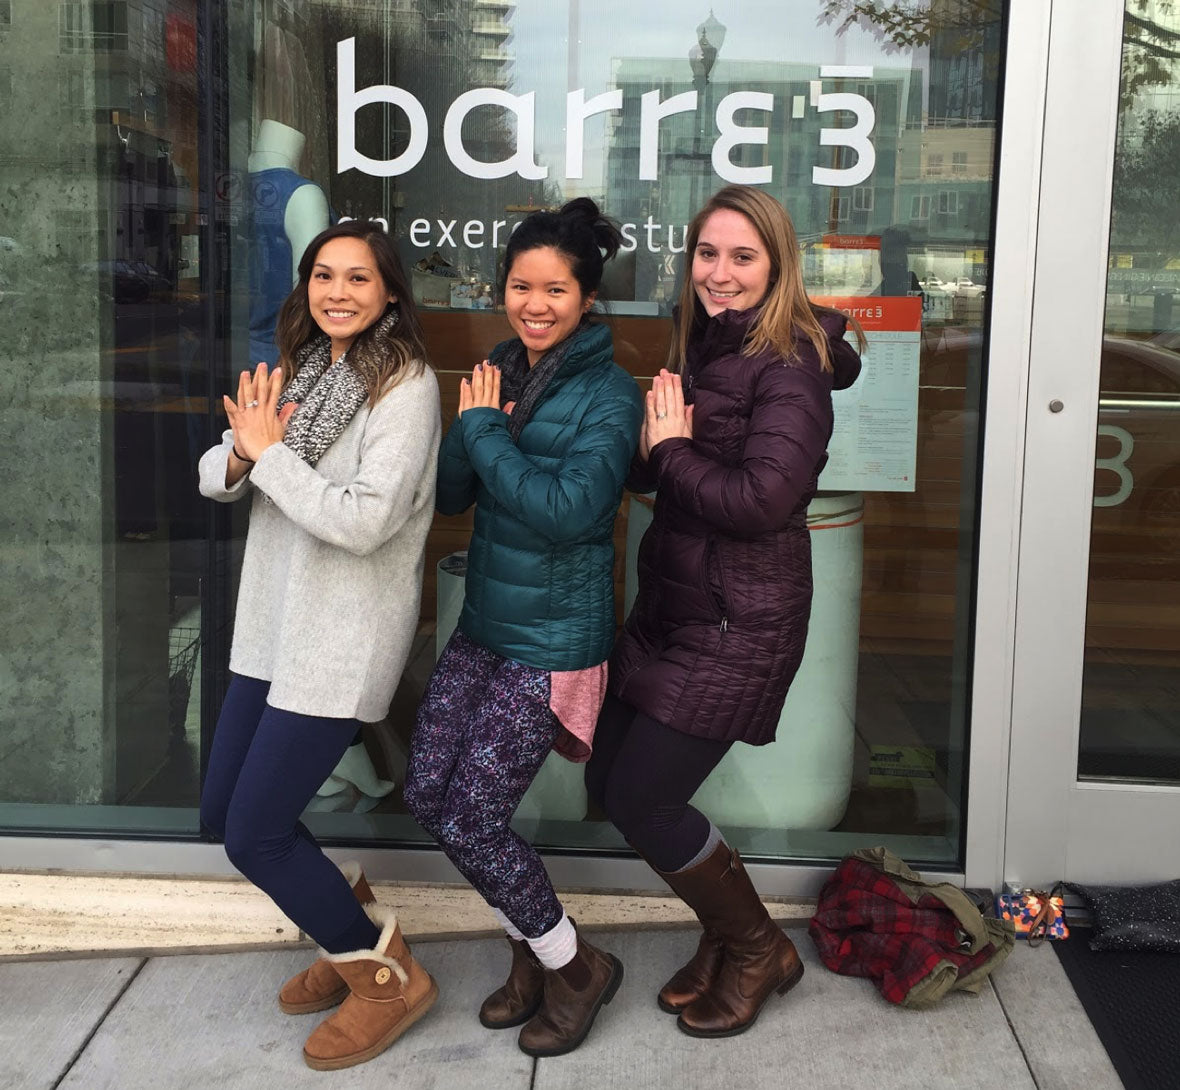 Jacklyn & friends in front of Barre3